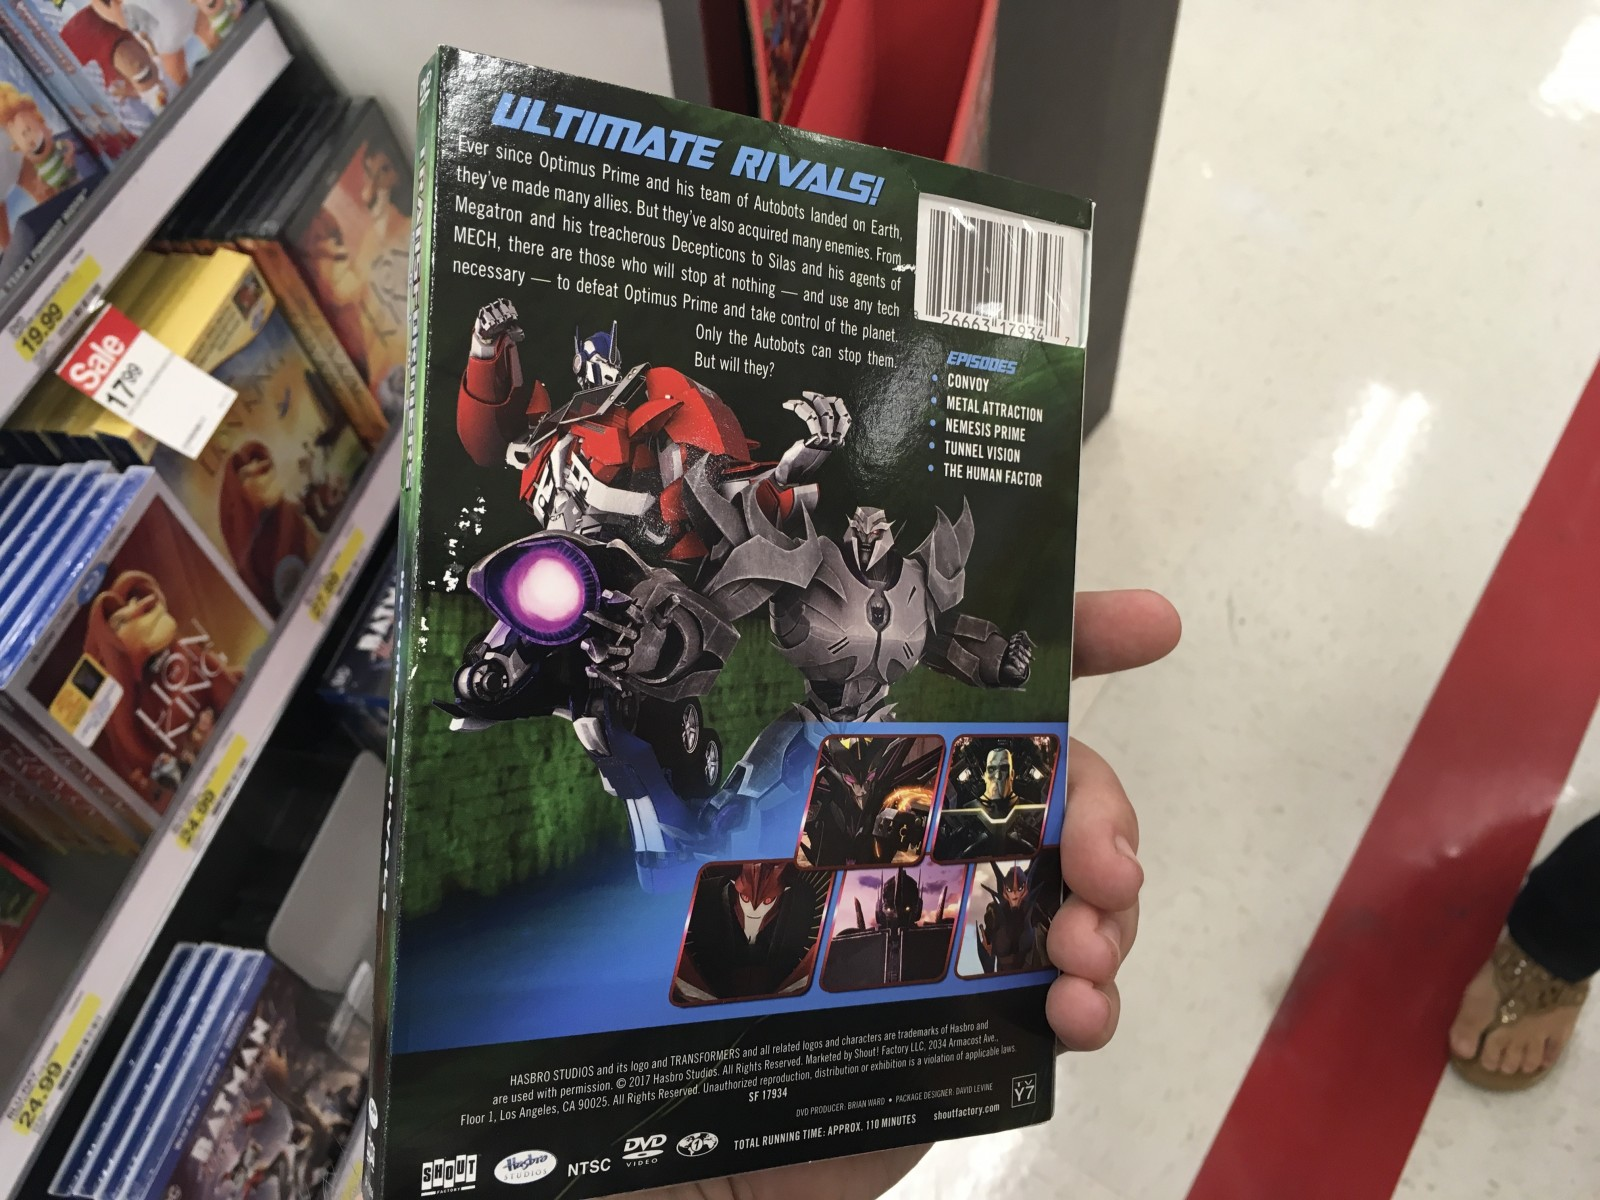 Transformers News: Transformers: Prime Ultimate rivals on DVD sighted in New York!